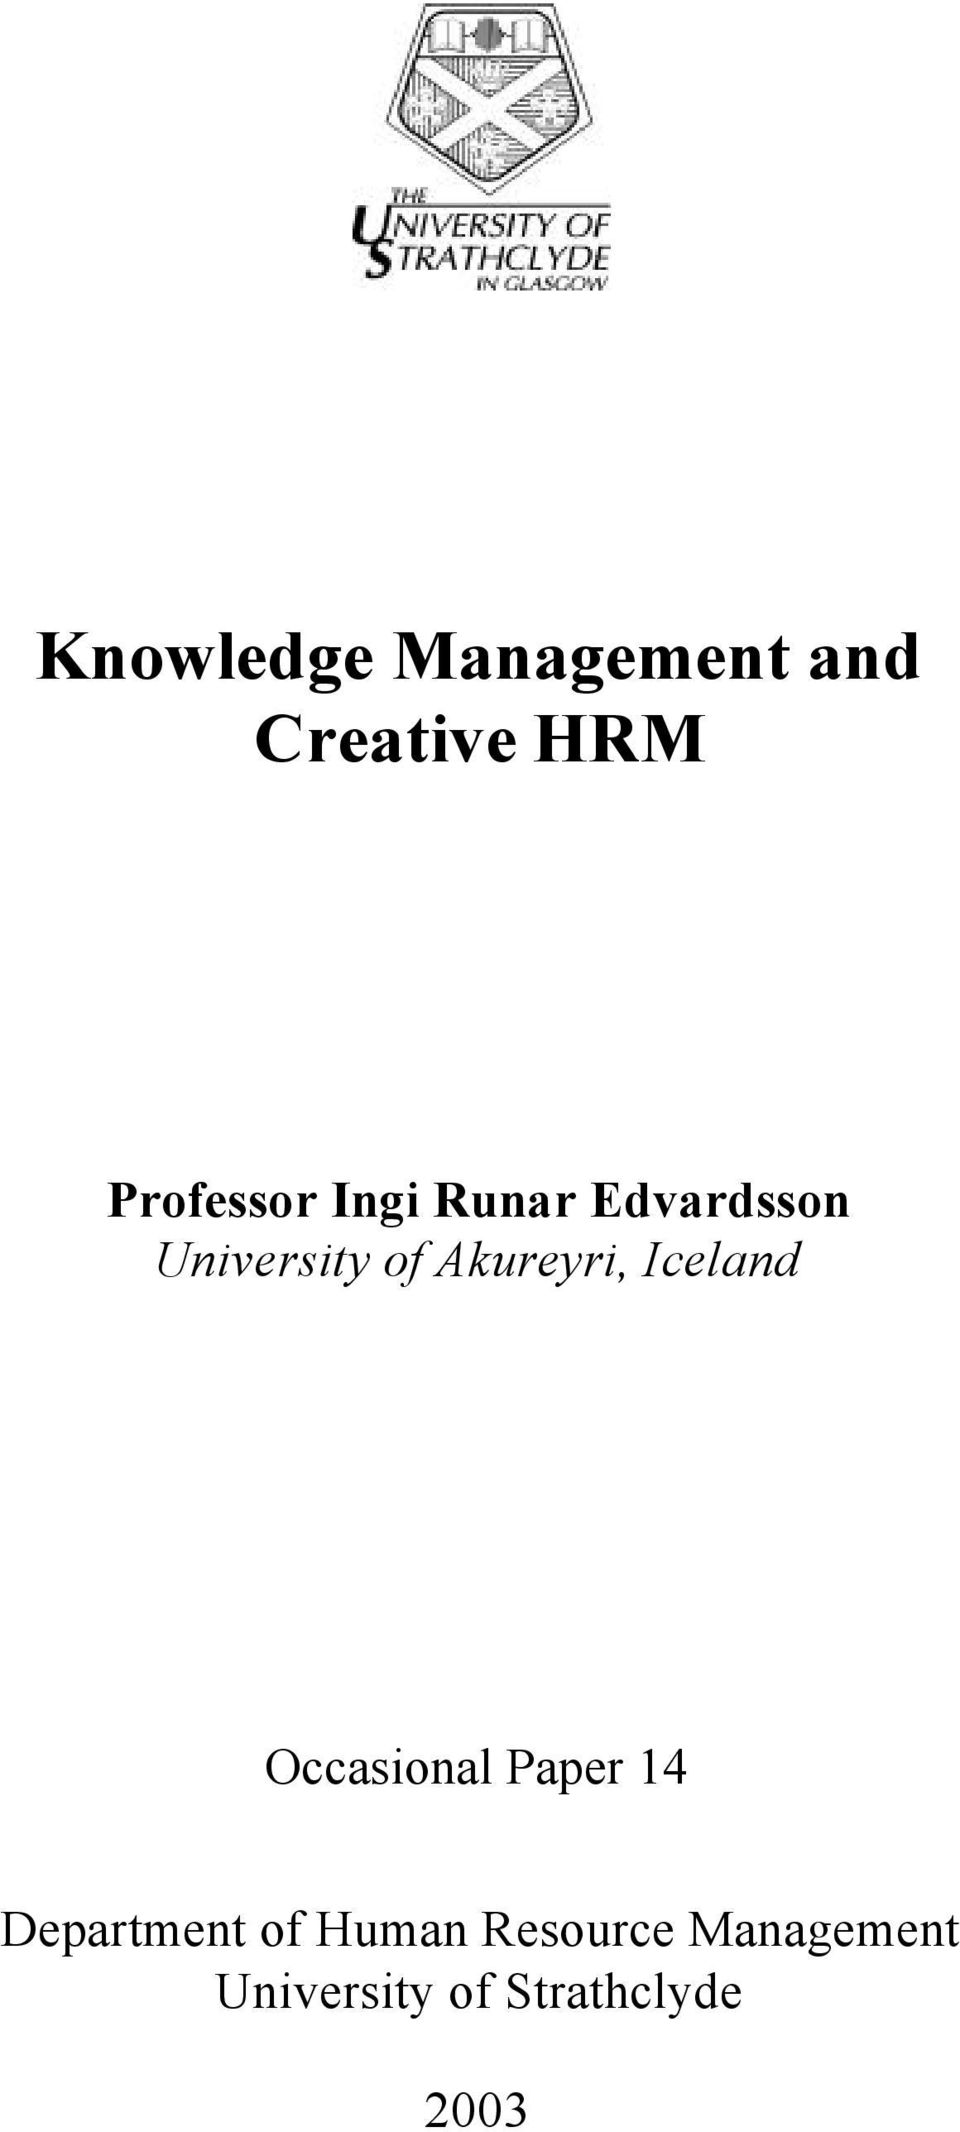 Iceland Occasional Paper 14 Department of Human